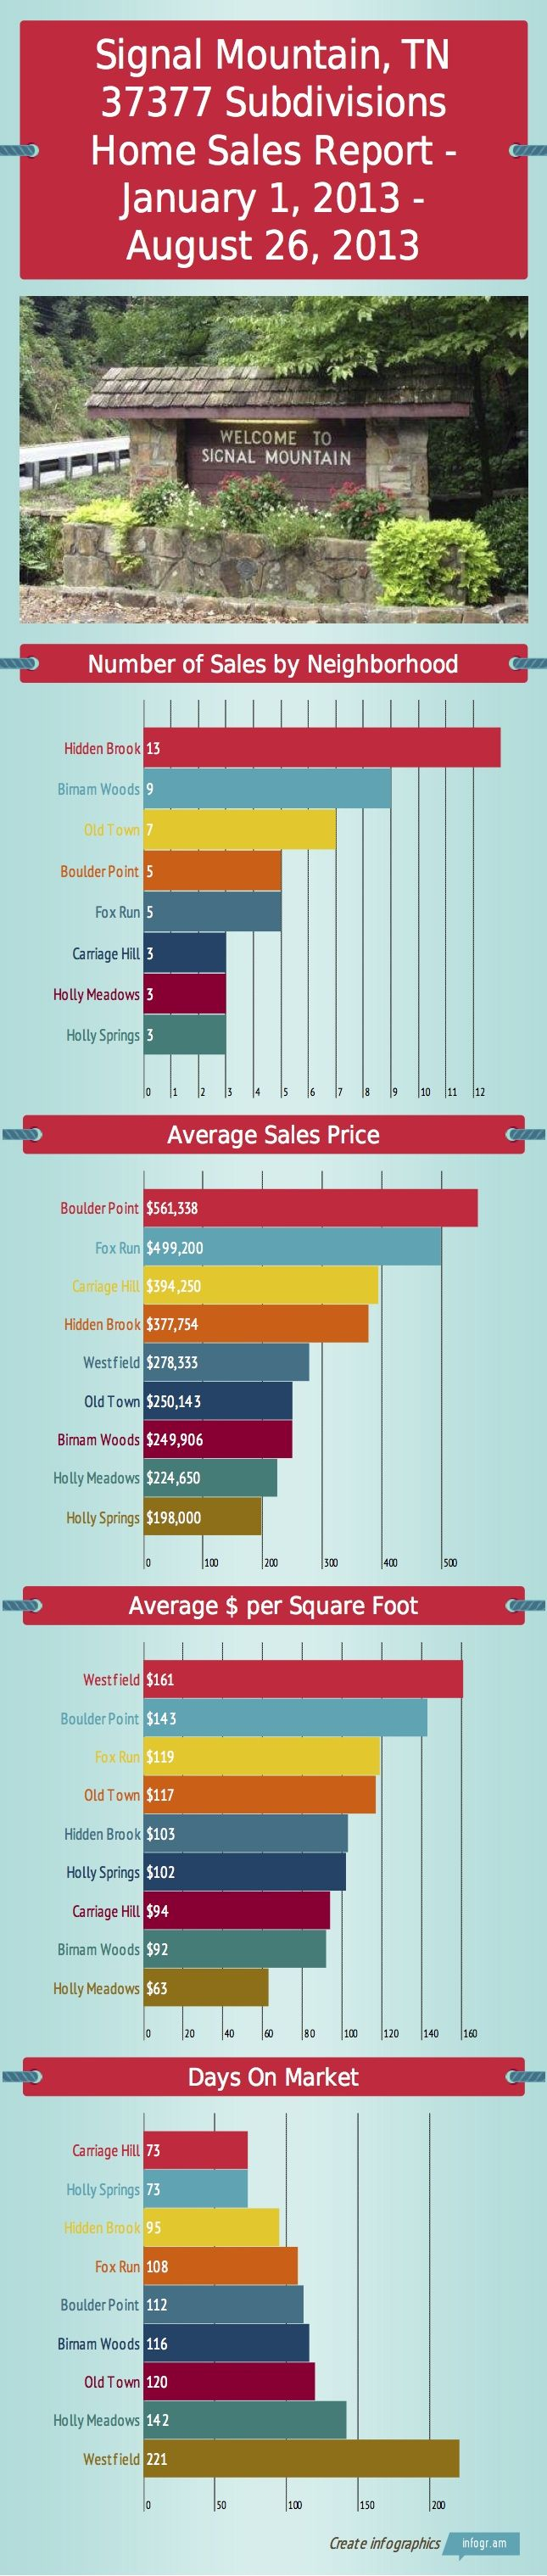 Signal Mountain, TN 37377 Neighborhood Home Sales Report for January 1, 2013 - August 26, 2013  #SignalMountainTN37377 #HomeSales